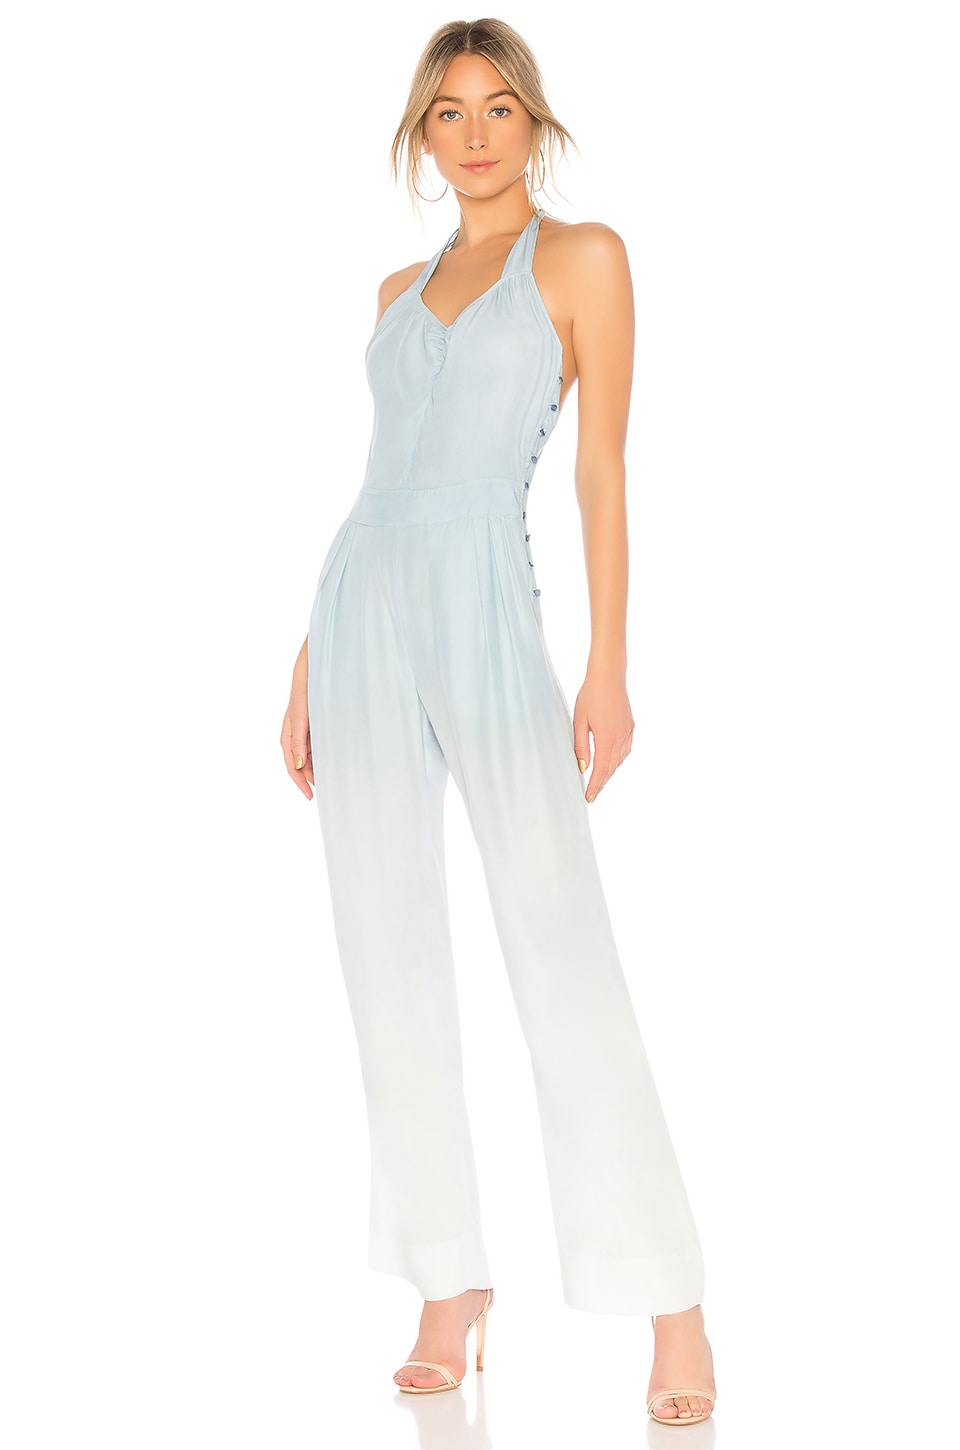 AMANDA BOND Joni Jumpsuit in Baby Blue